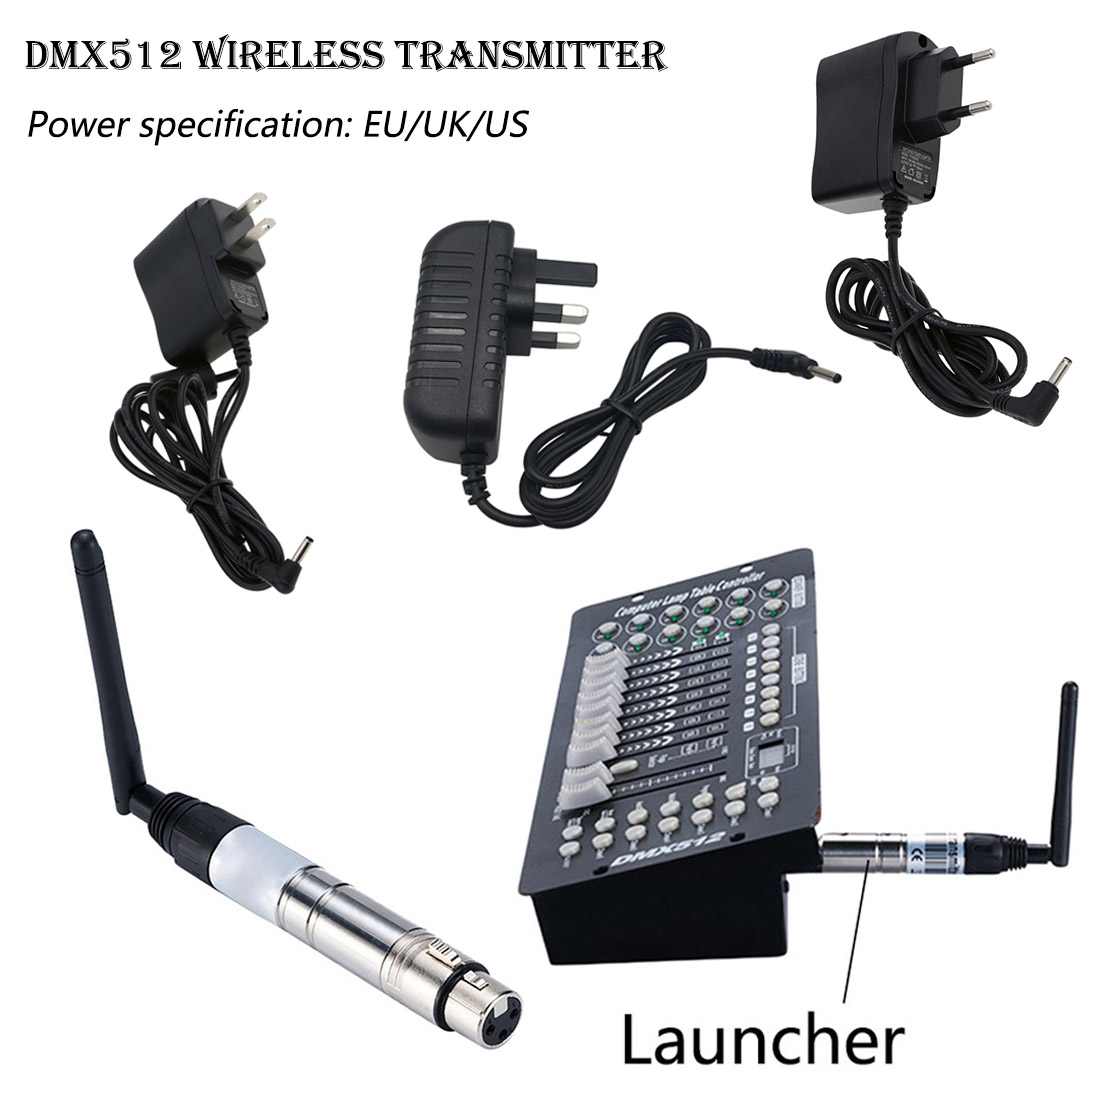 1 Set DMX512 DJ Wireless System Transmitter 2.4G for LED Stage Light LED Light 500m Control1 Set DMX512 DJ Wireless System Transmitter 2.4G for LED Stage Light LED Light 500m Control